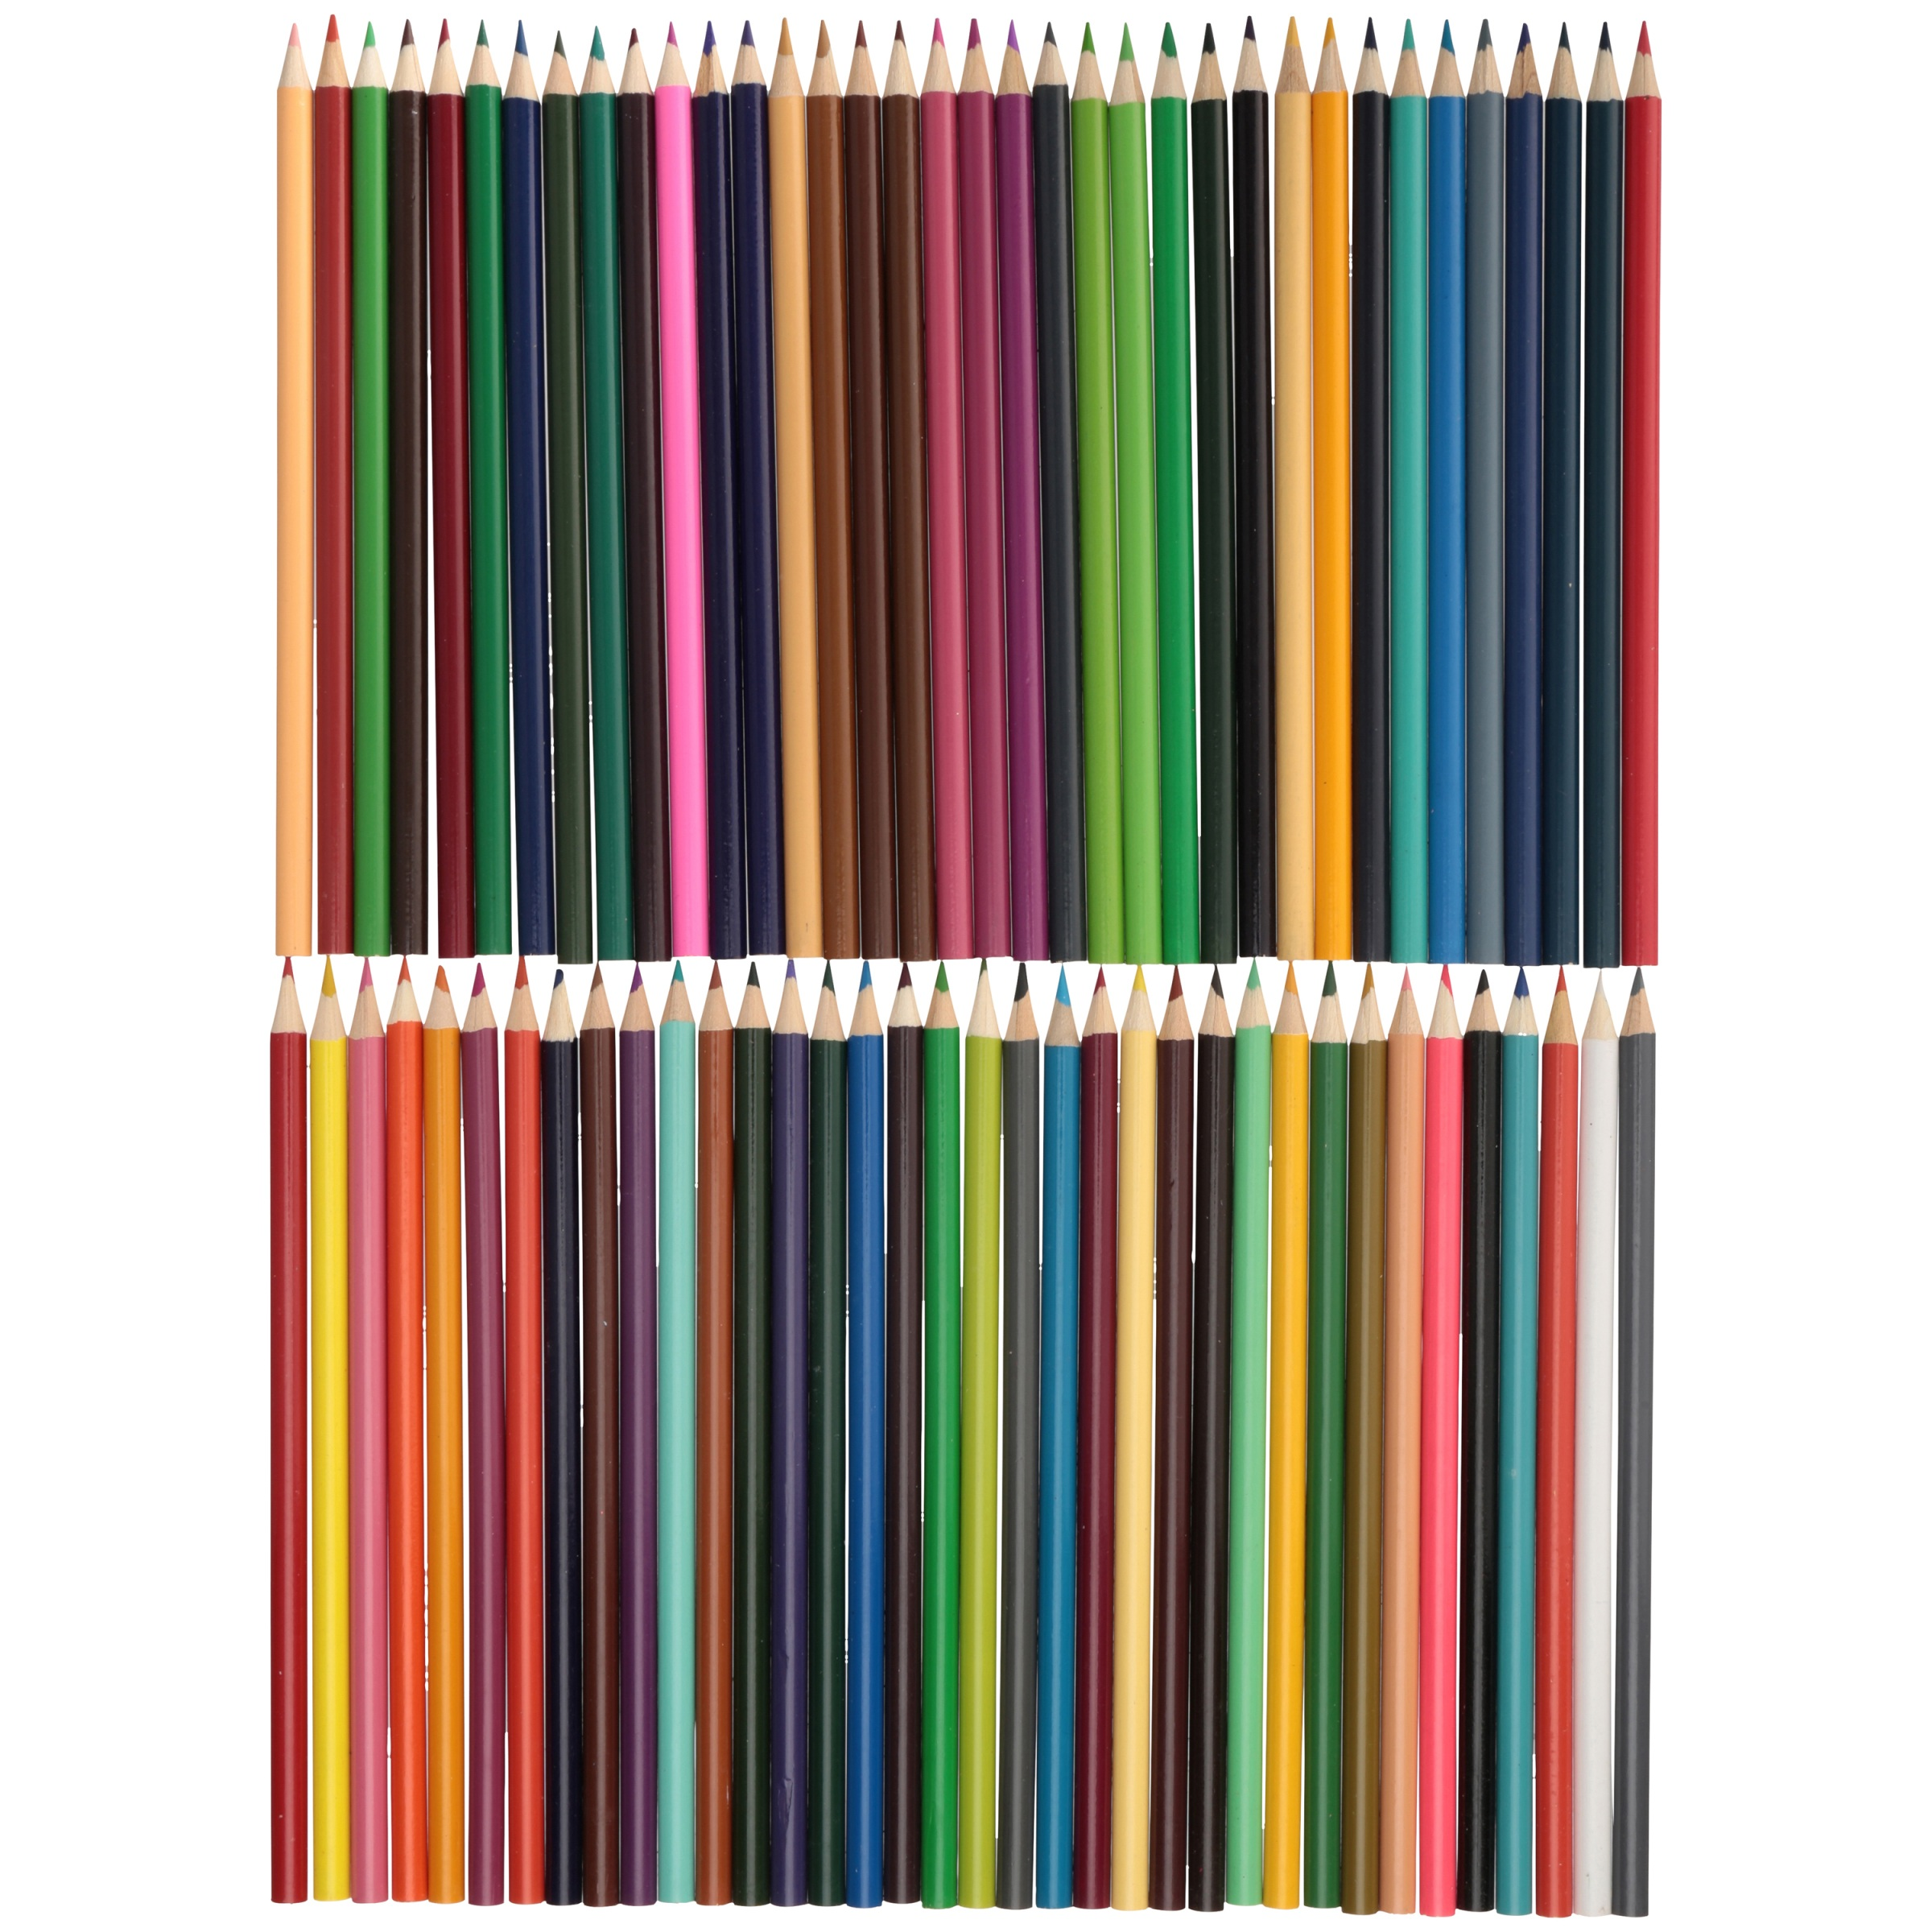 Leisure Arts Colored Pencils, 72 Count